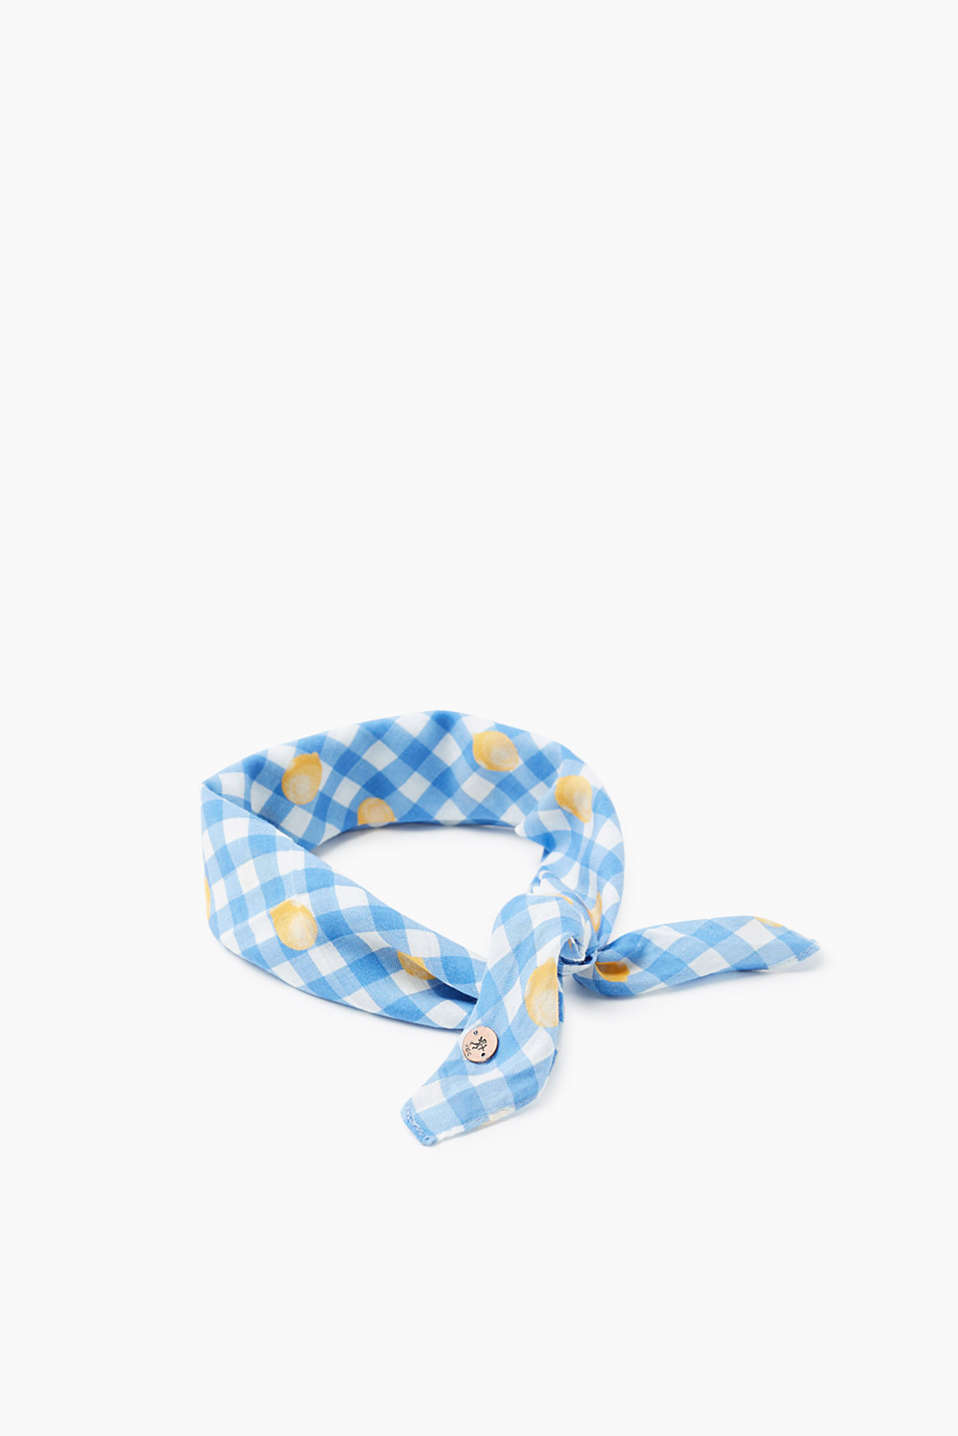 Gingham check bandana made of delicate viscose fabric with a motif print